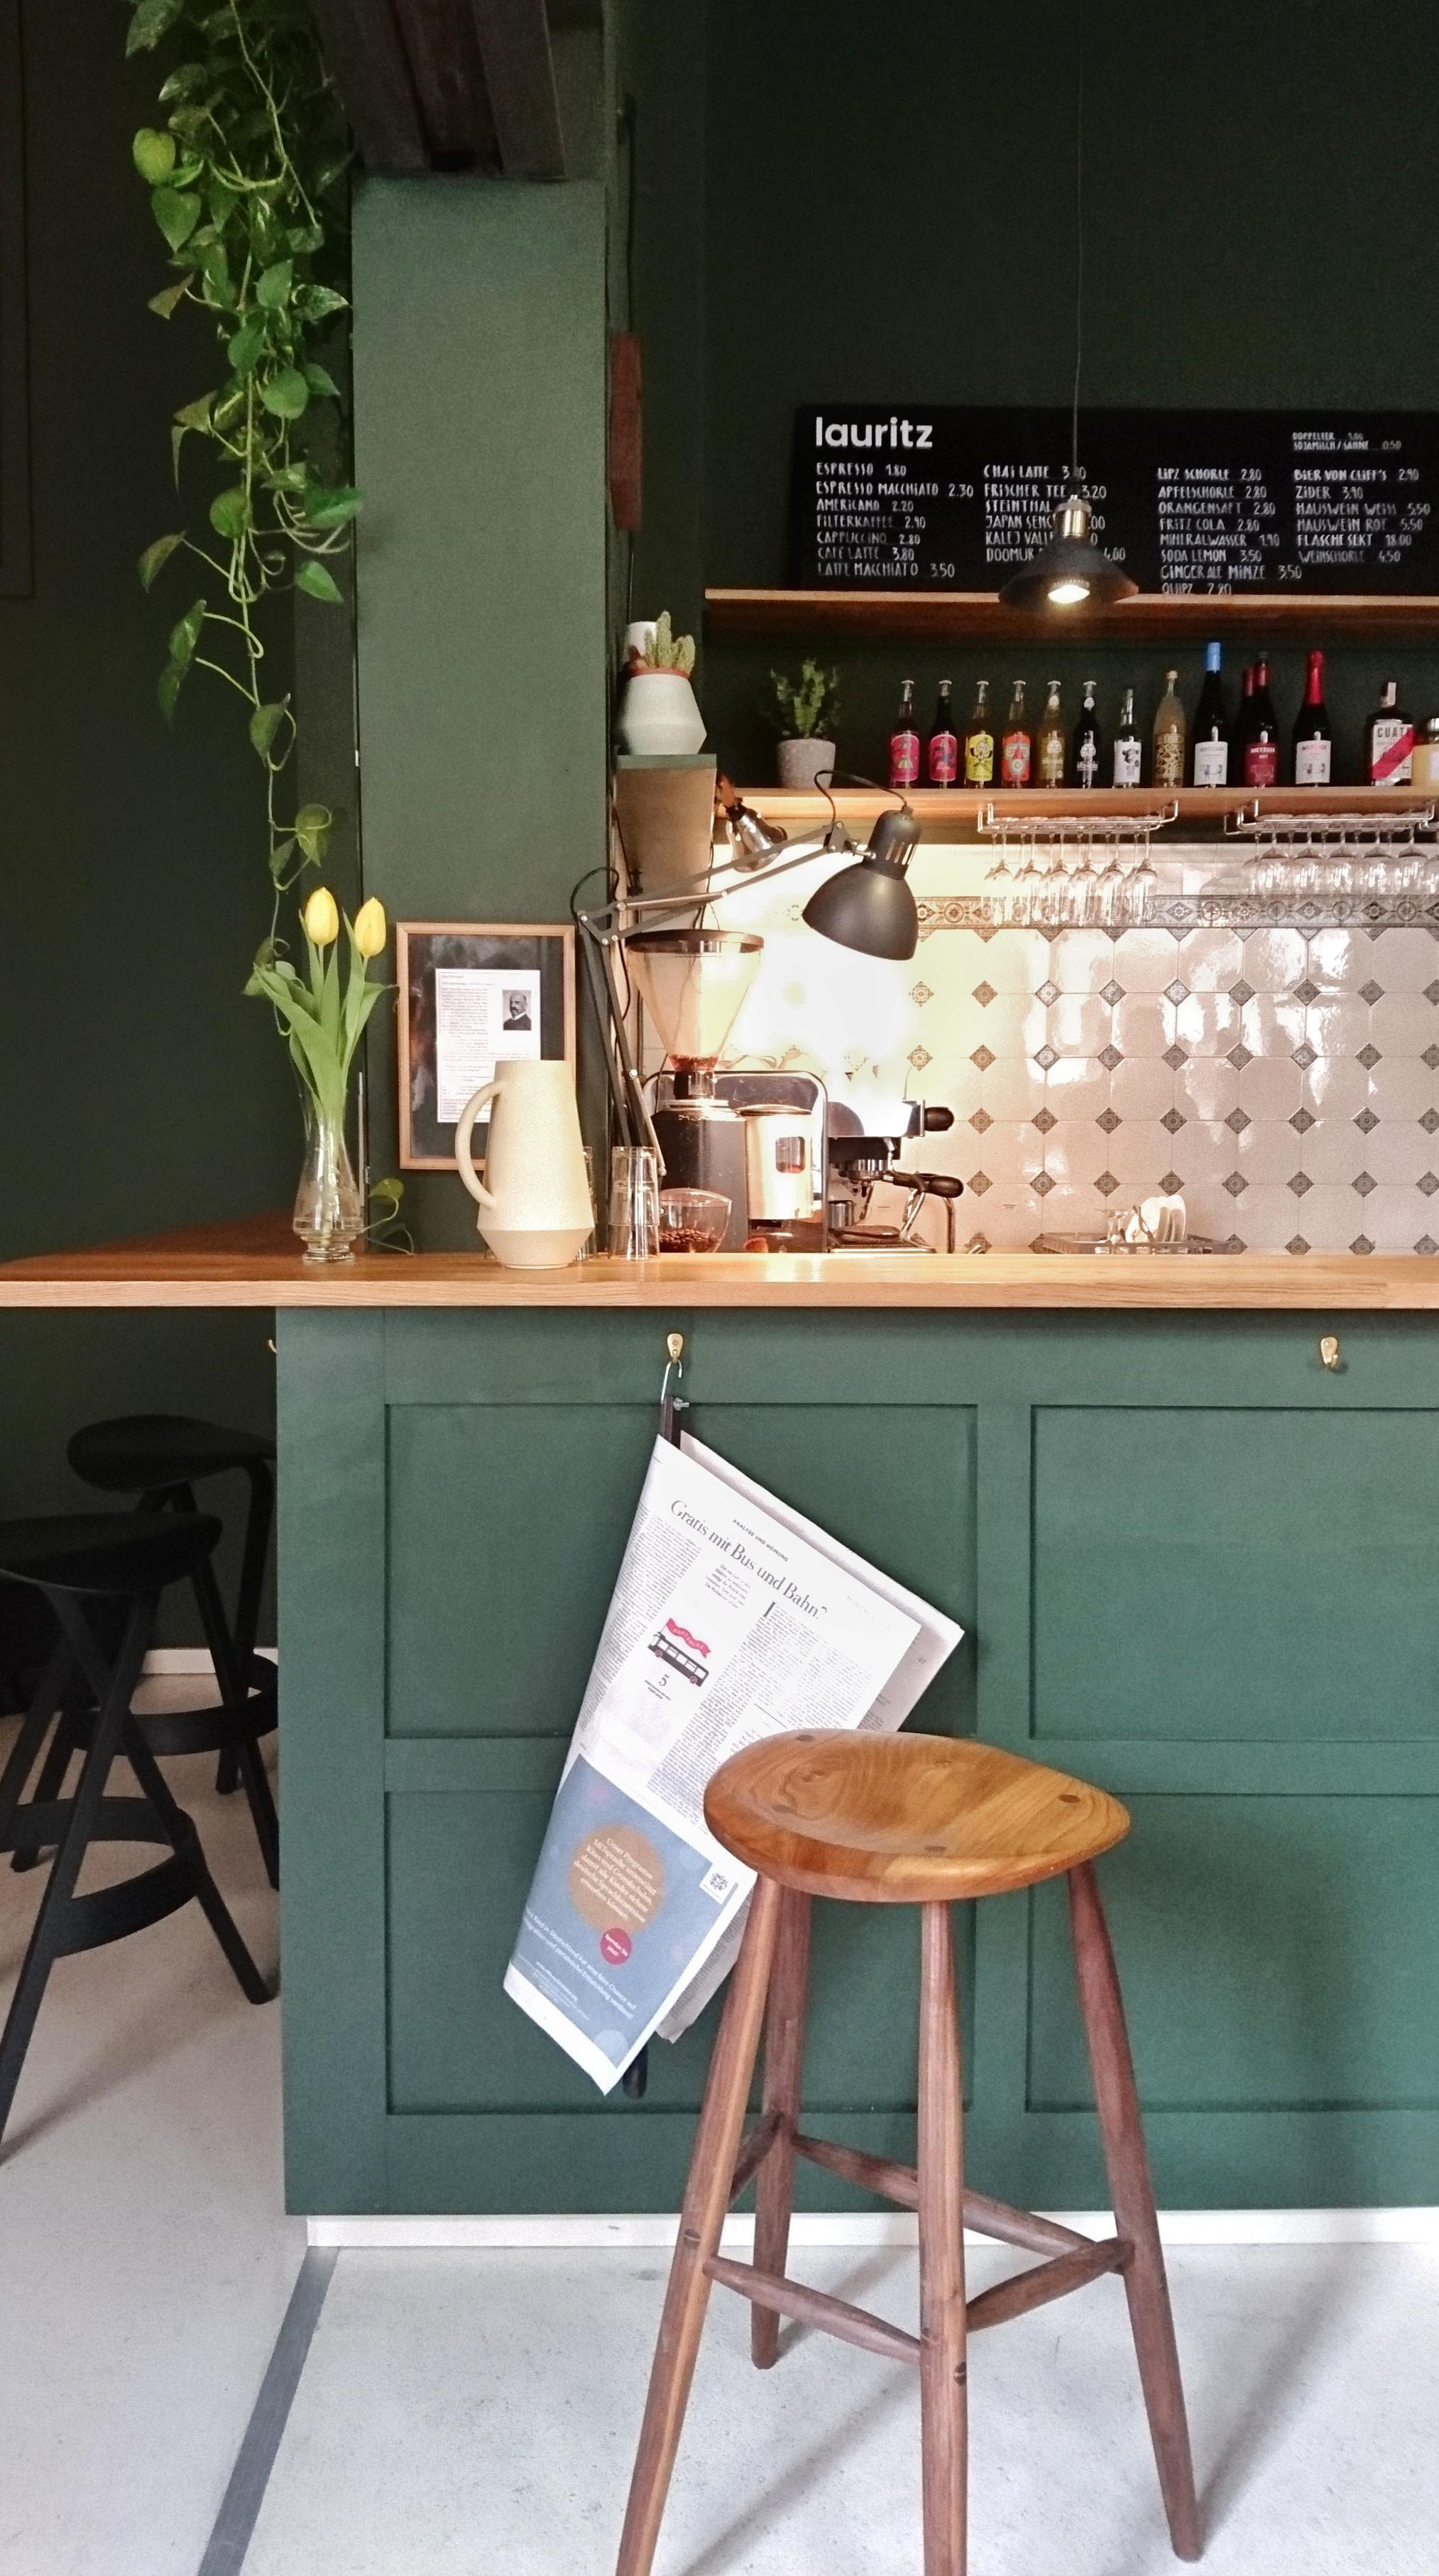 Produktdesign und #Kaffee im Café Lauritz  in Leipzig #interior #urbanjungle #hocker #lampe